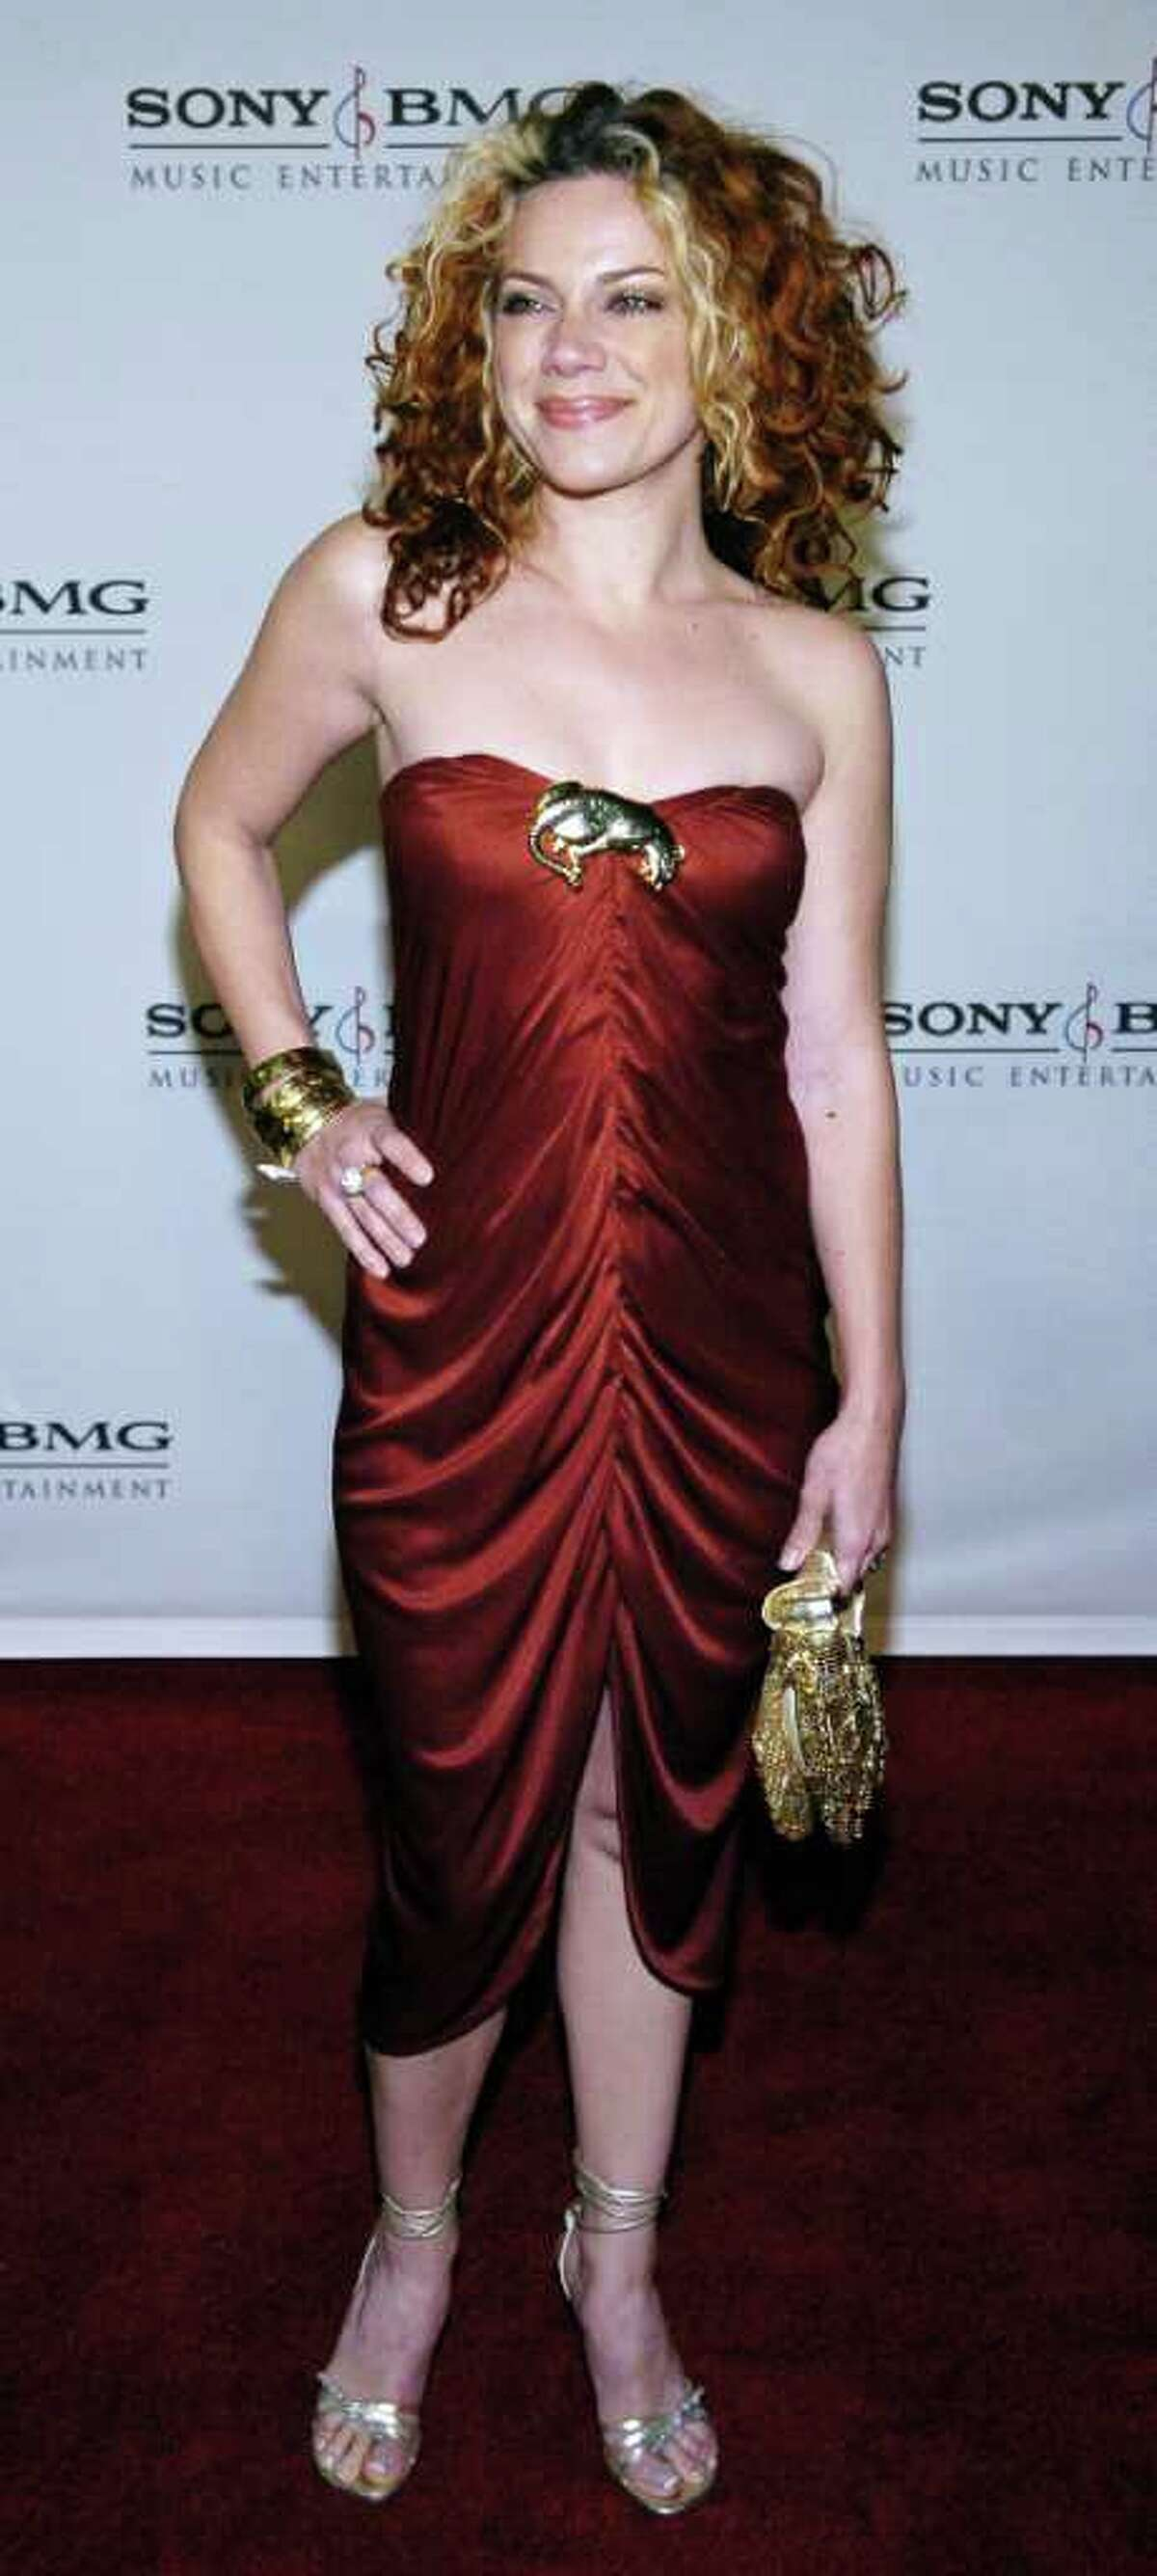 Singer Nikka Costa arrives for the Sony BMG Grammy Party in Los Angeles February 8, 2006. REUTERS/Chris Pizzello